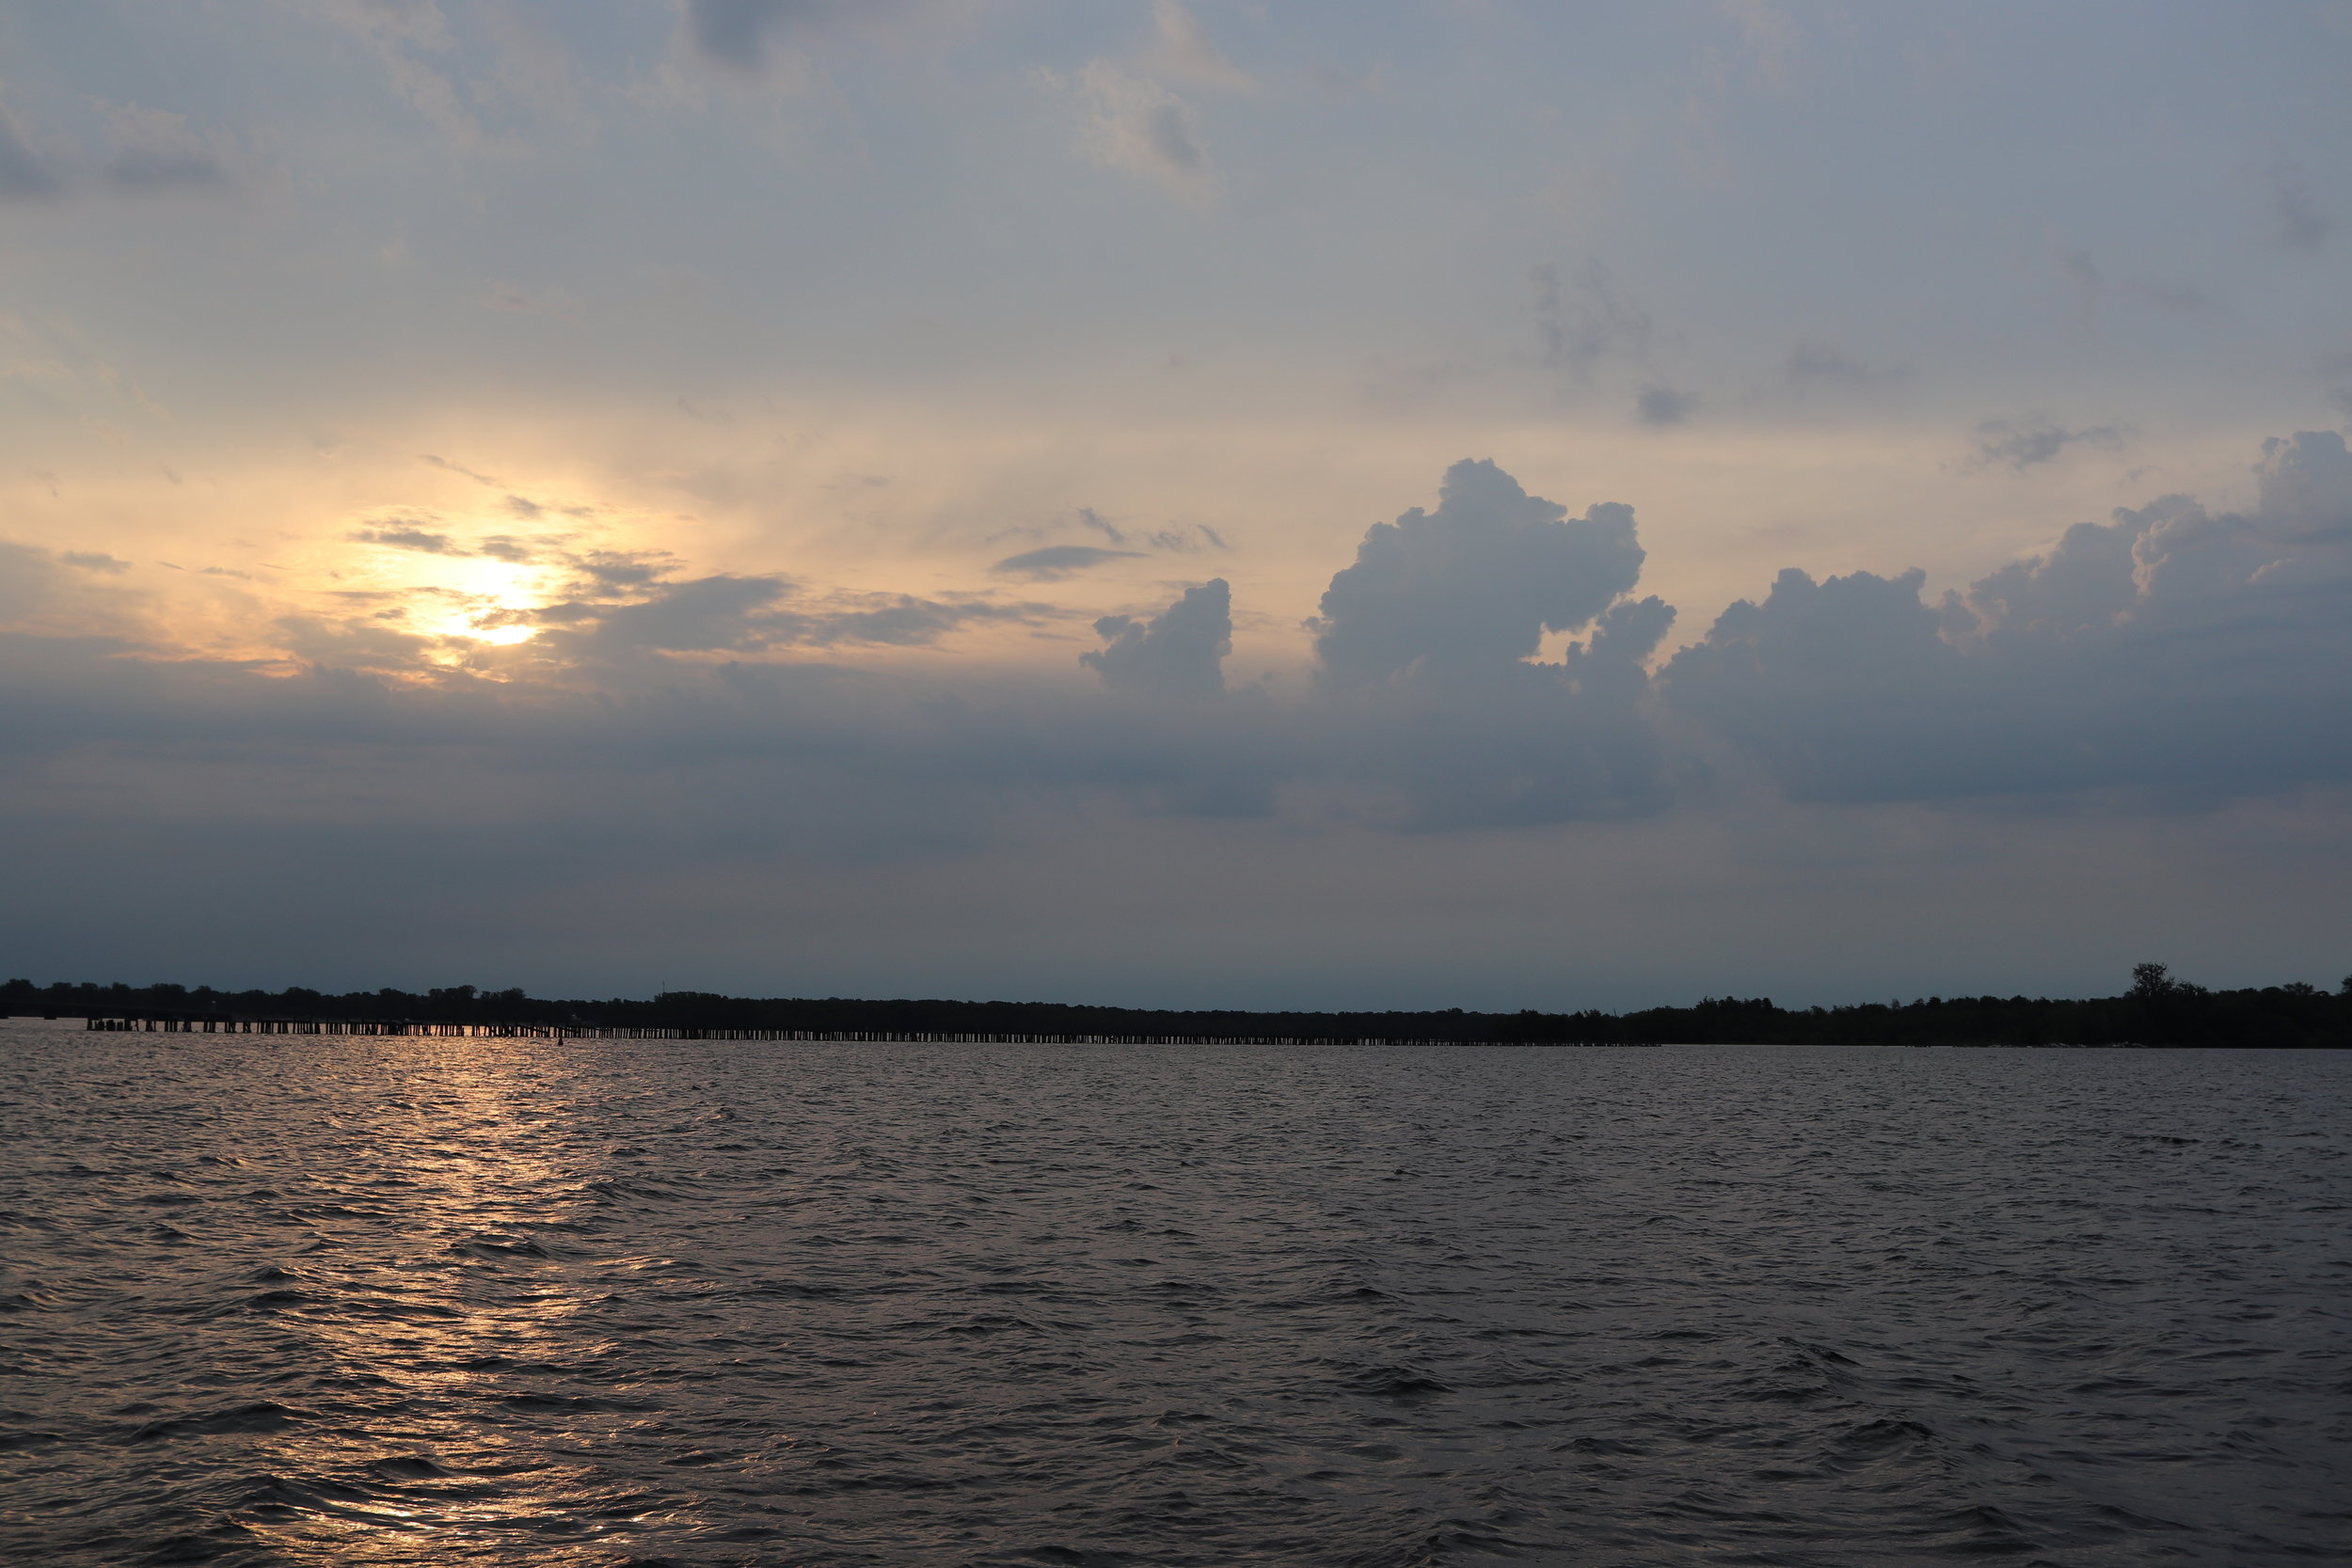 Early morning departure from Rouses Point